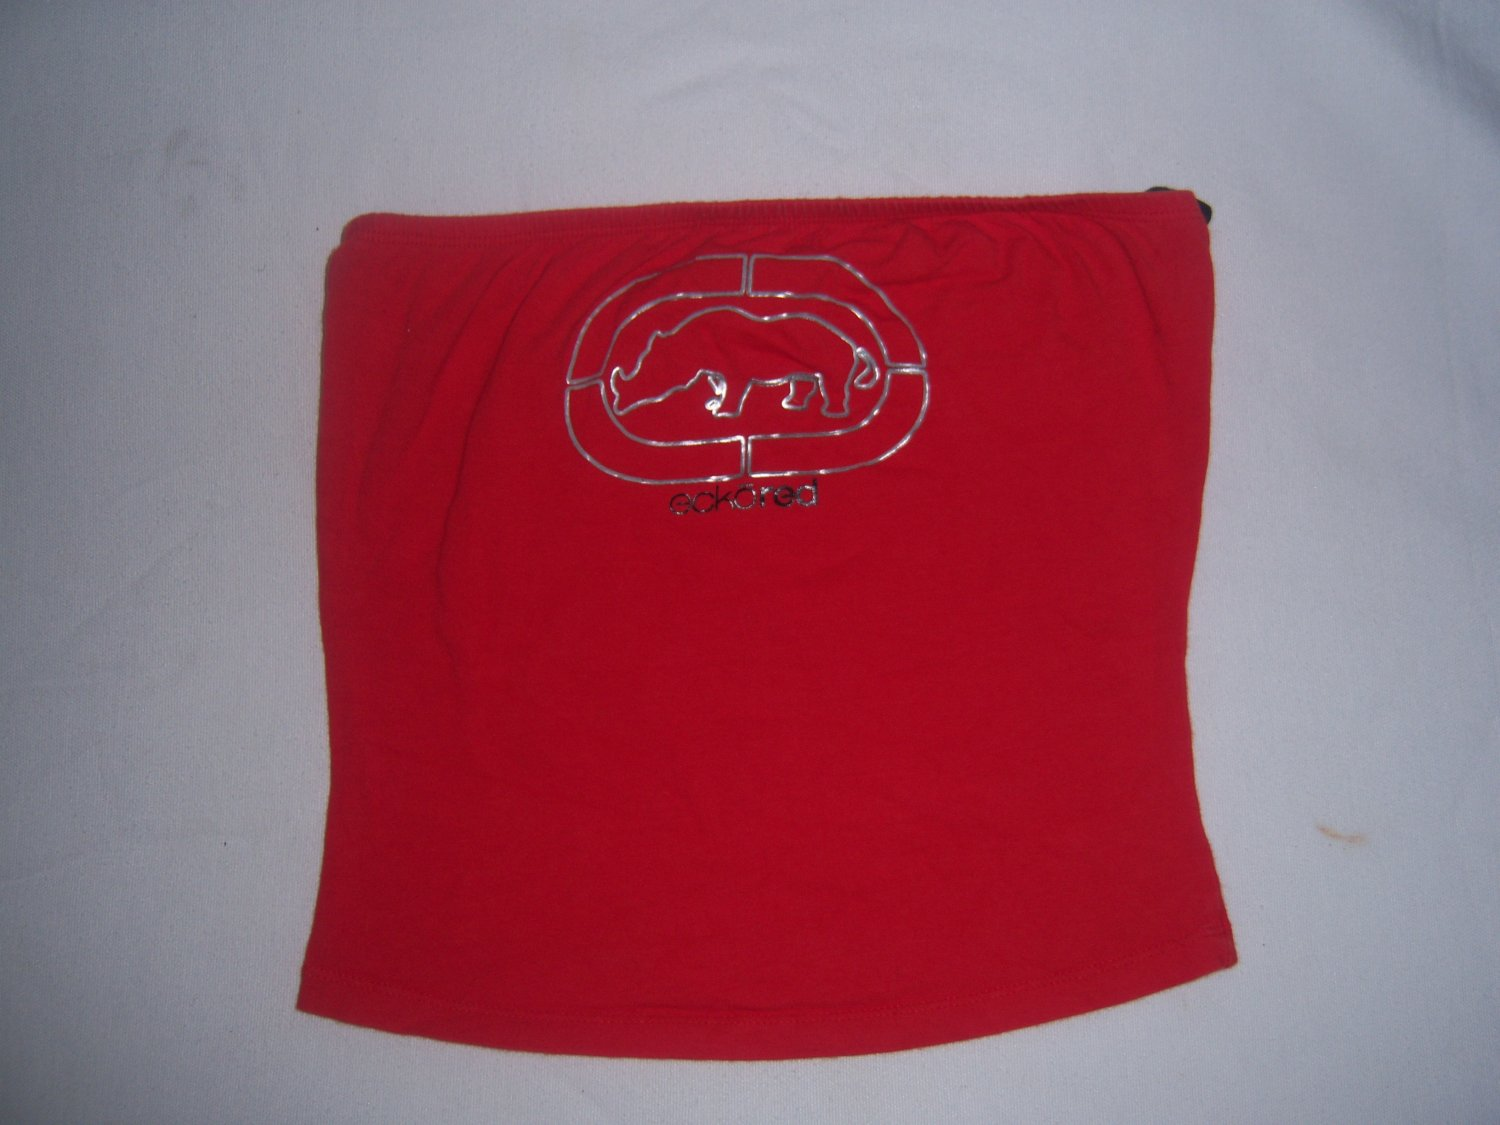 Ecko Red Women's Junior's Red Tube Top Size Medium